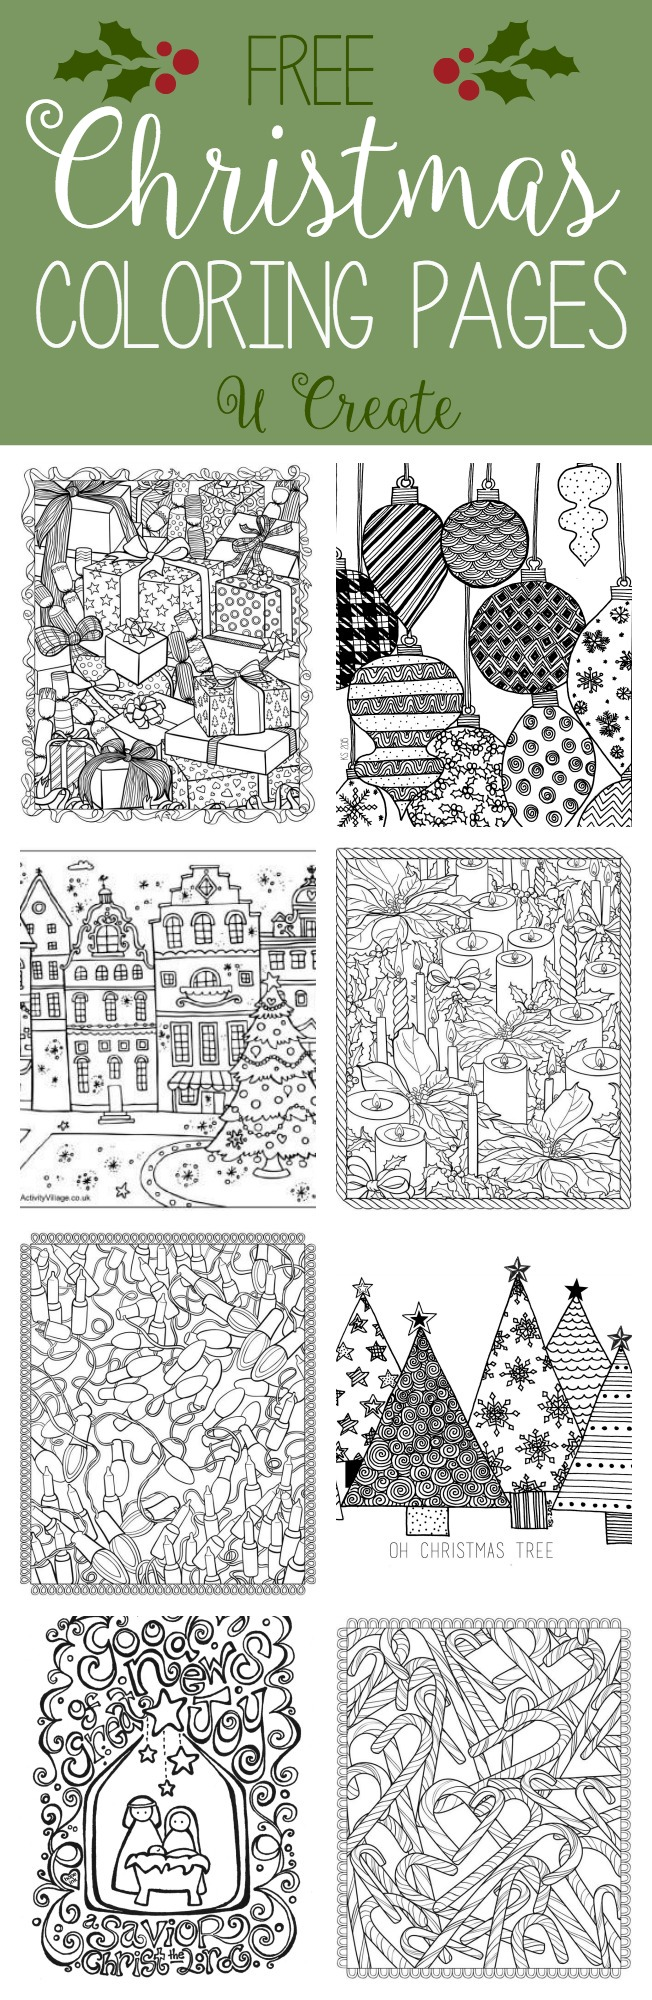 hight resolution of Free Christmas Adult Coloring Pages - U Create